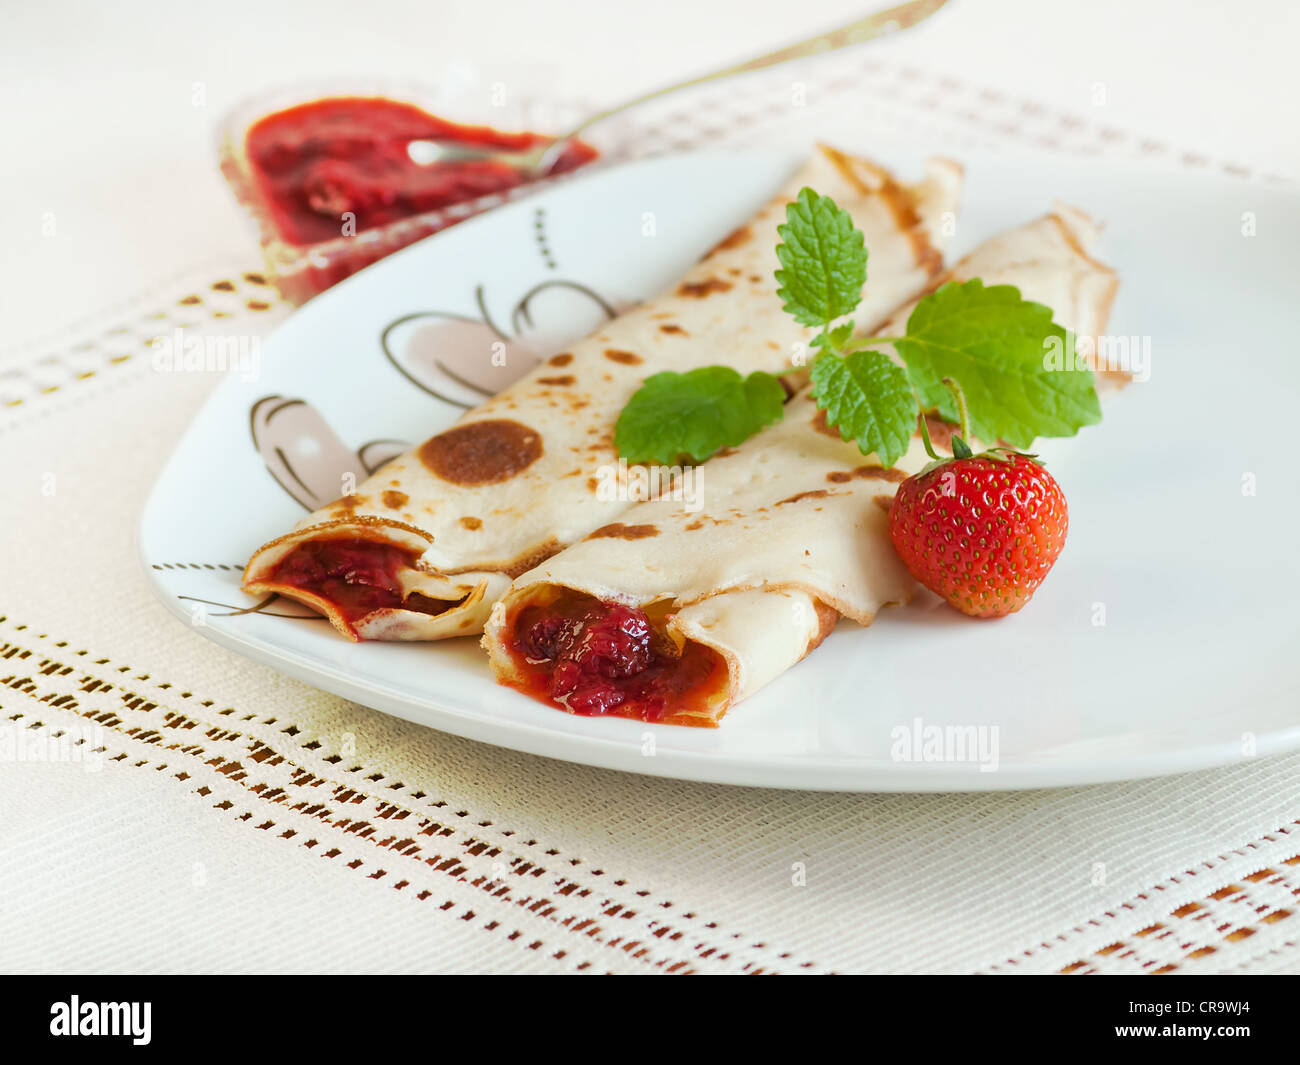 Rolled pancakes with strawberries - Stock Image